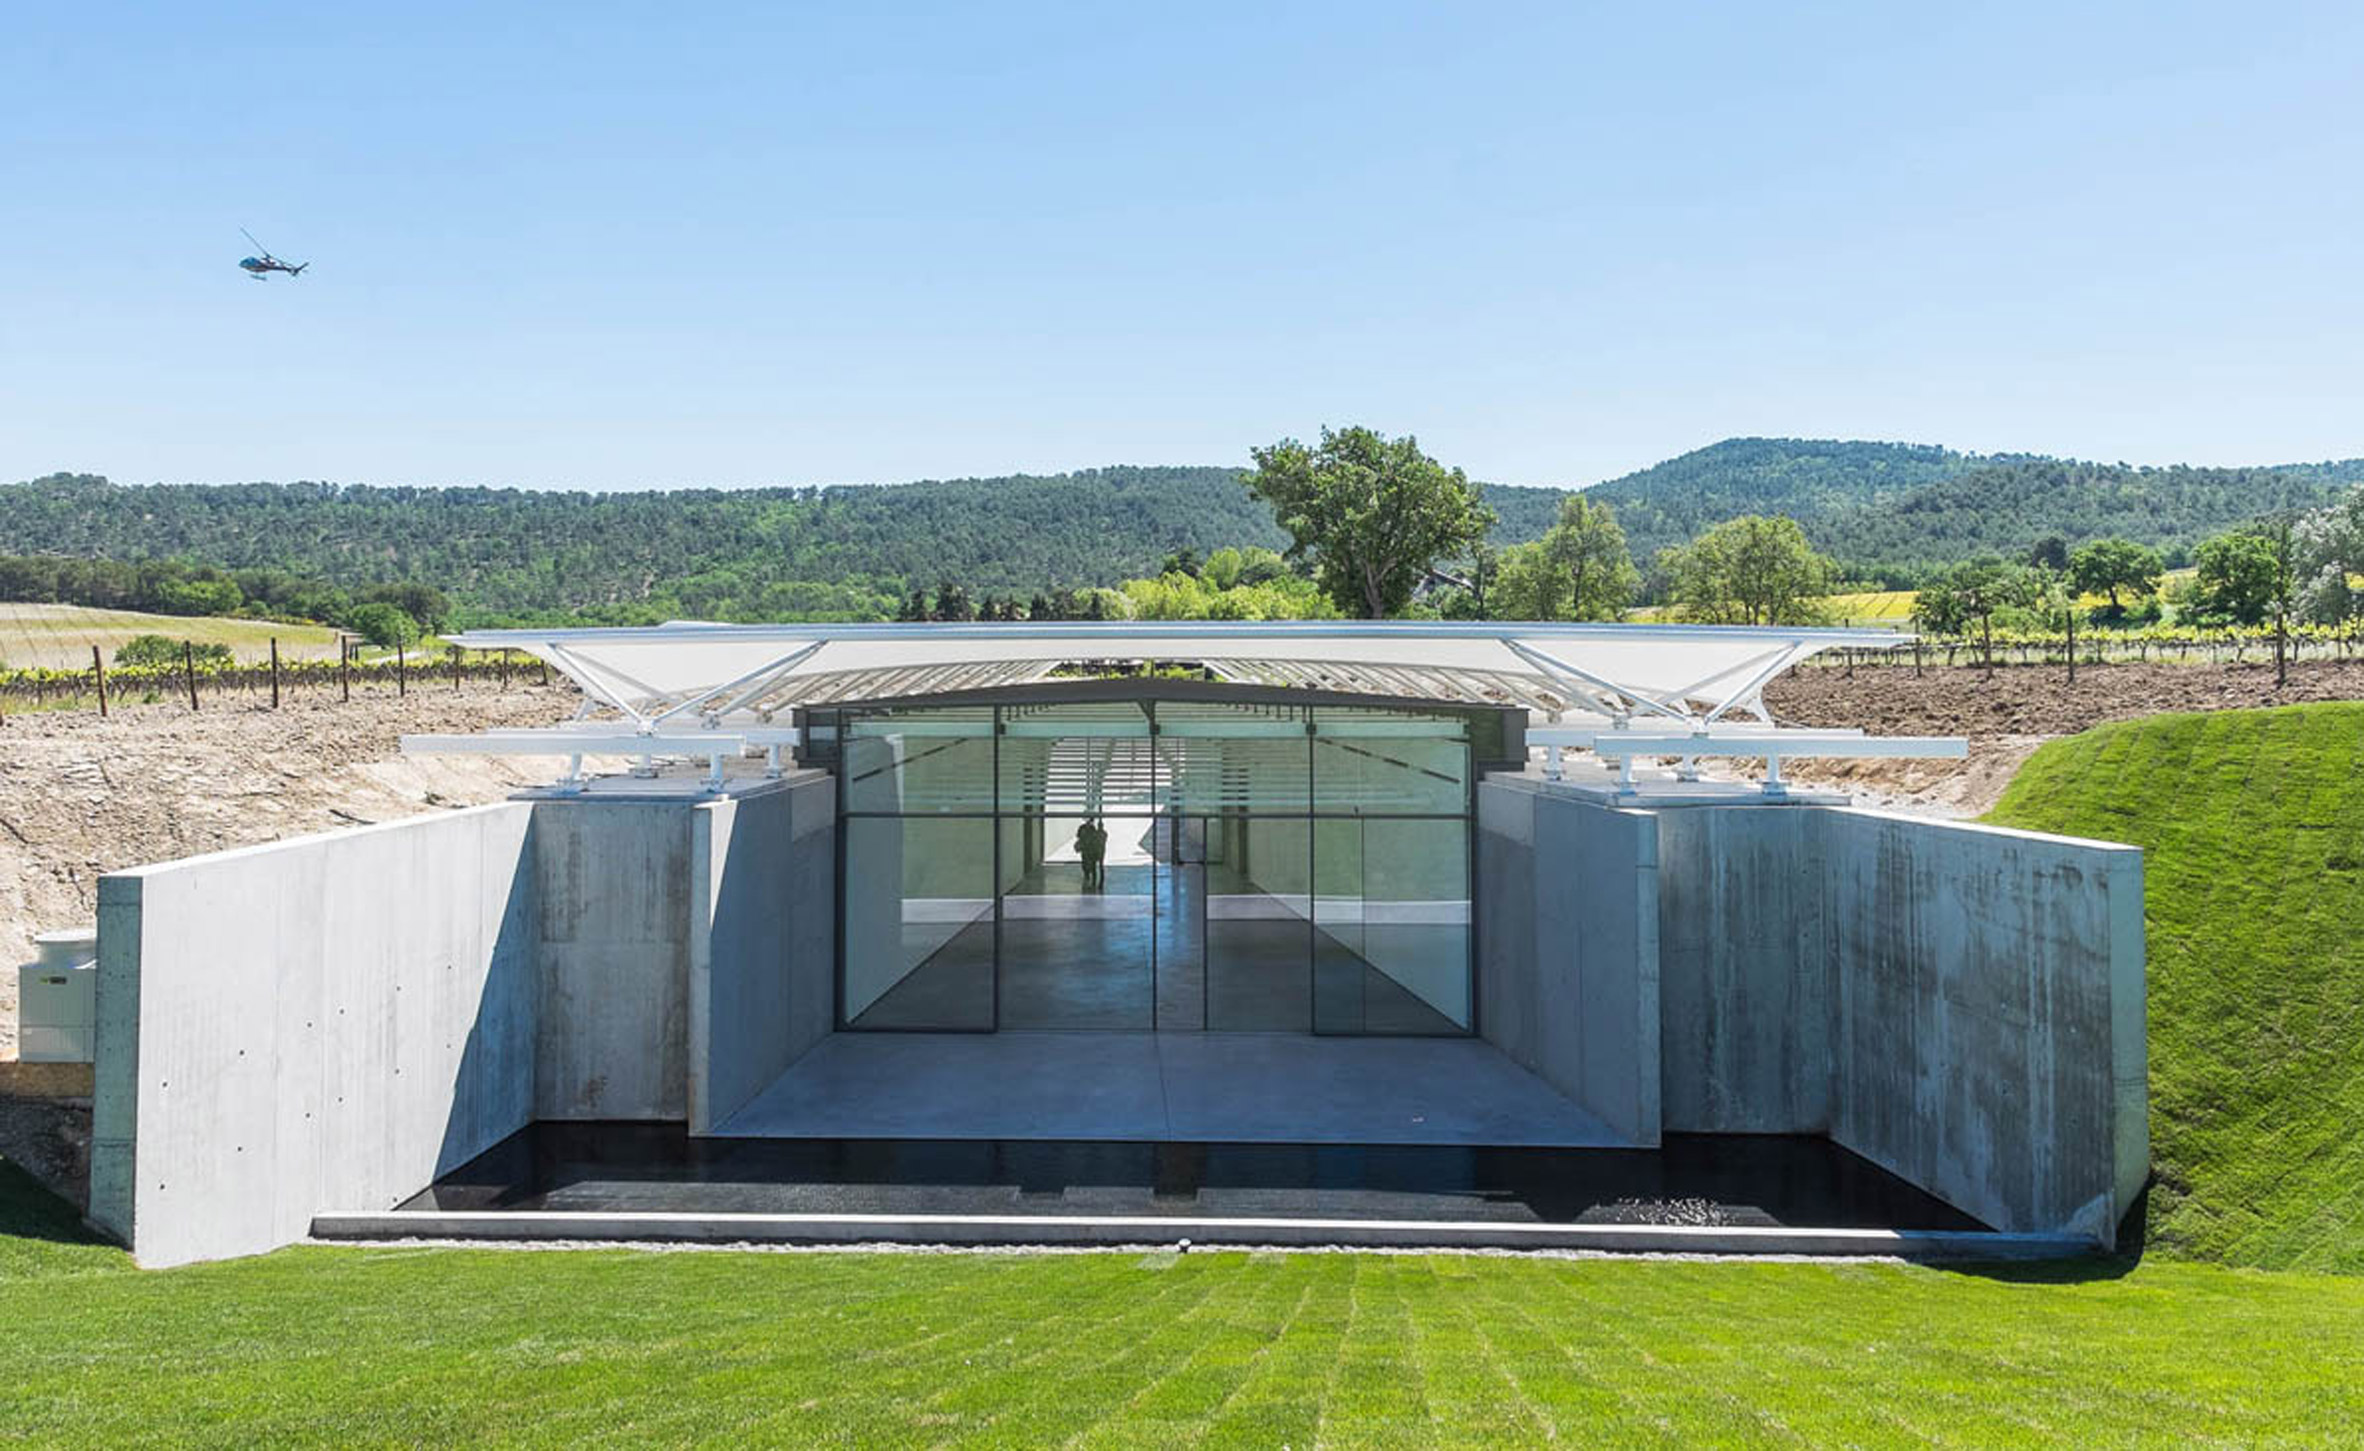 Renzo Piano sinks sail-covered art gallery into Aix-en-Provence vineyard